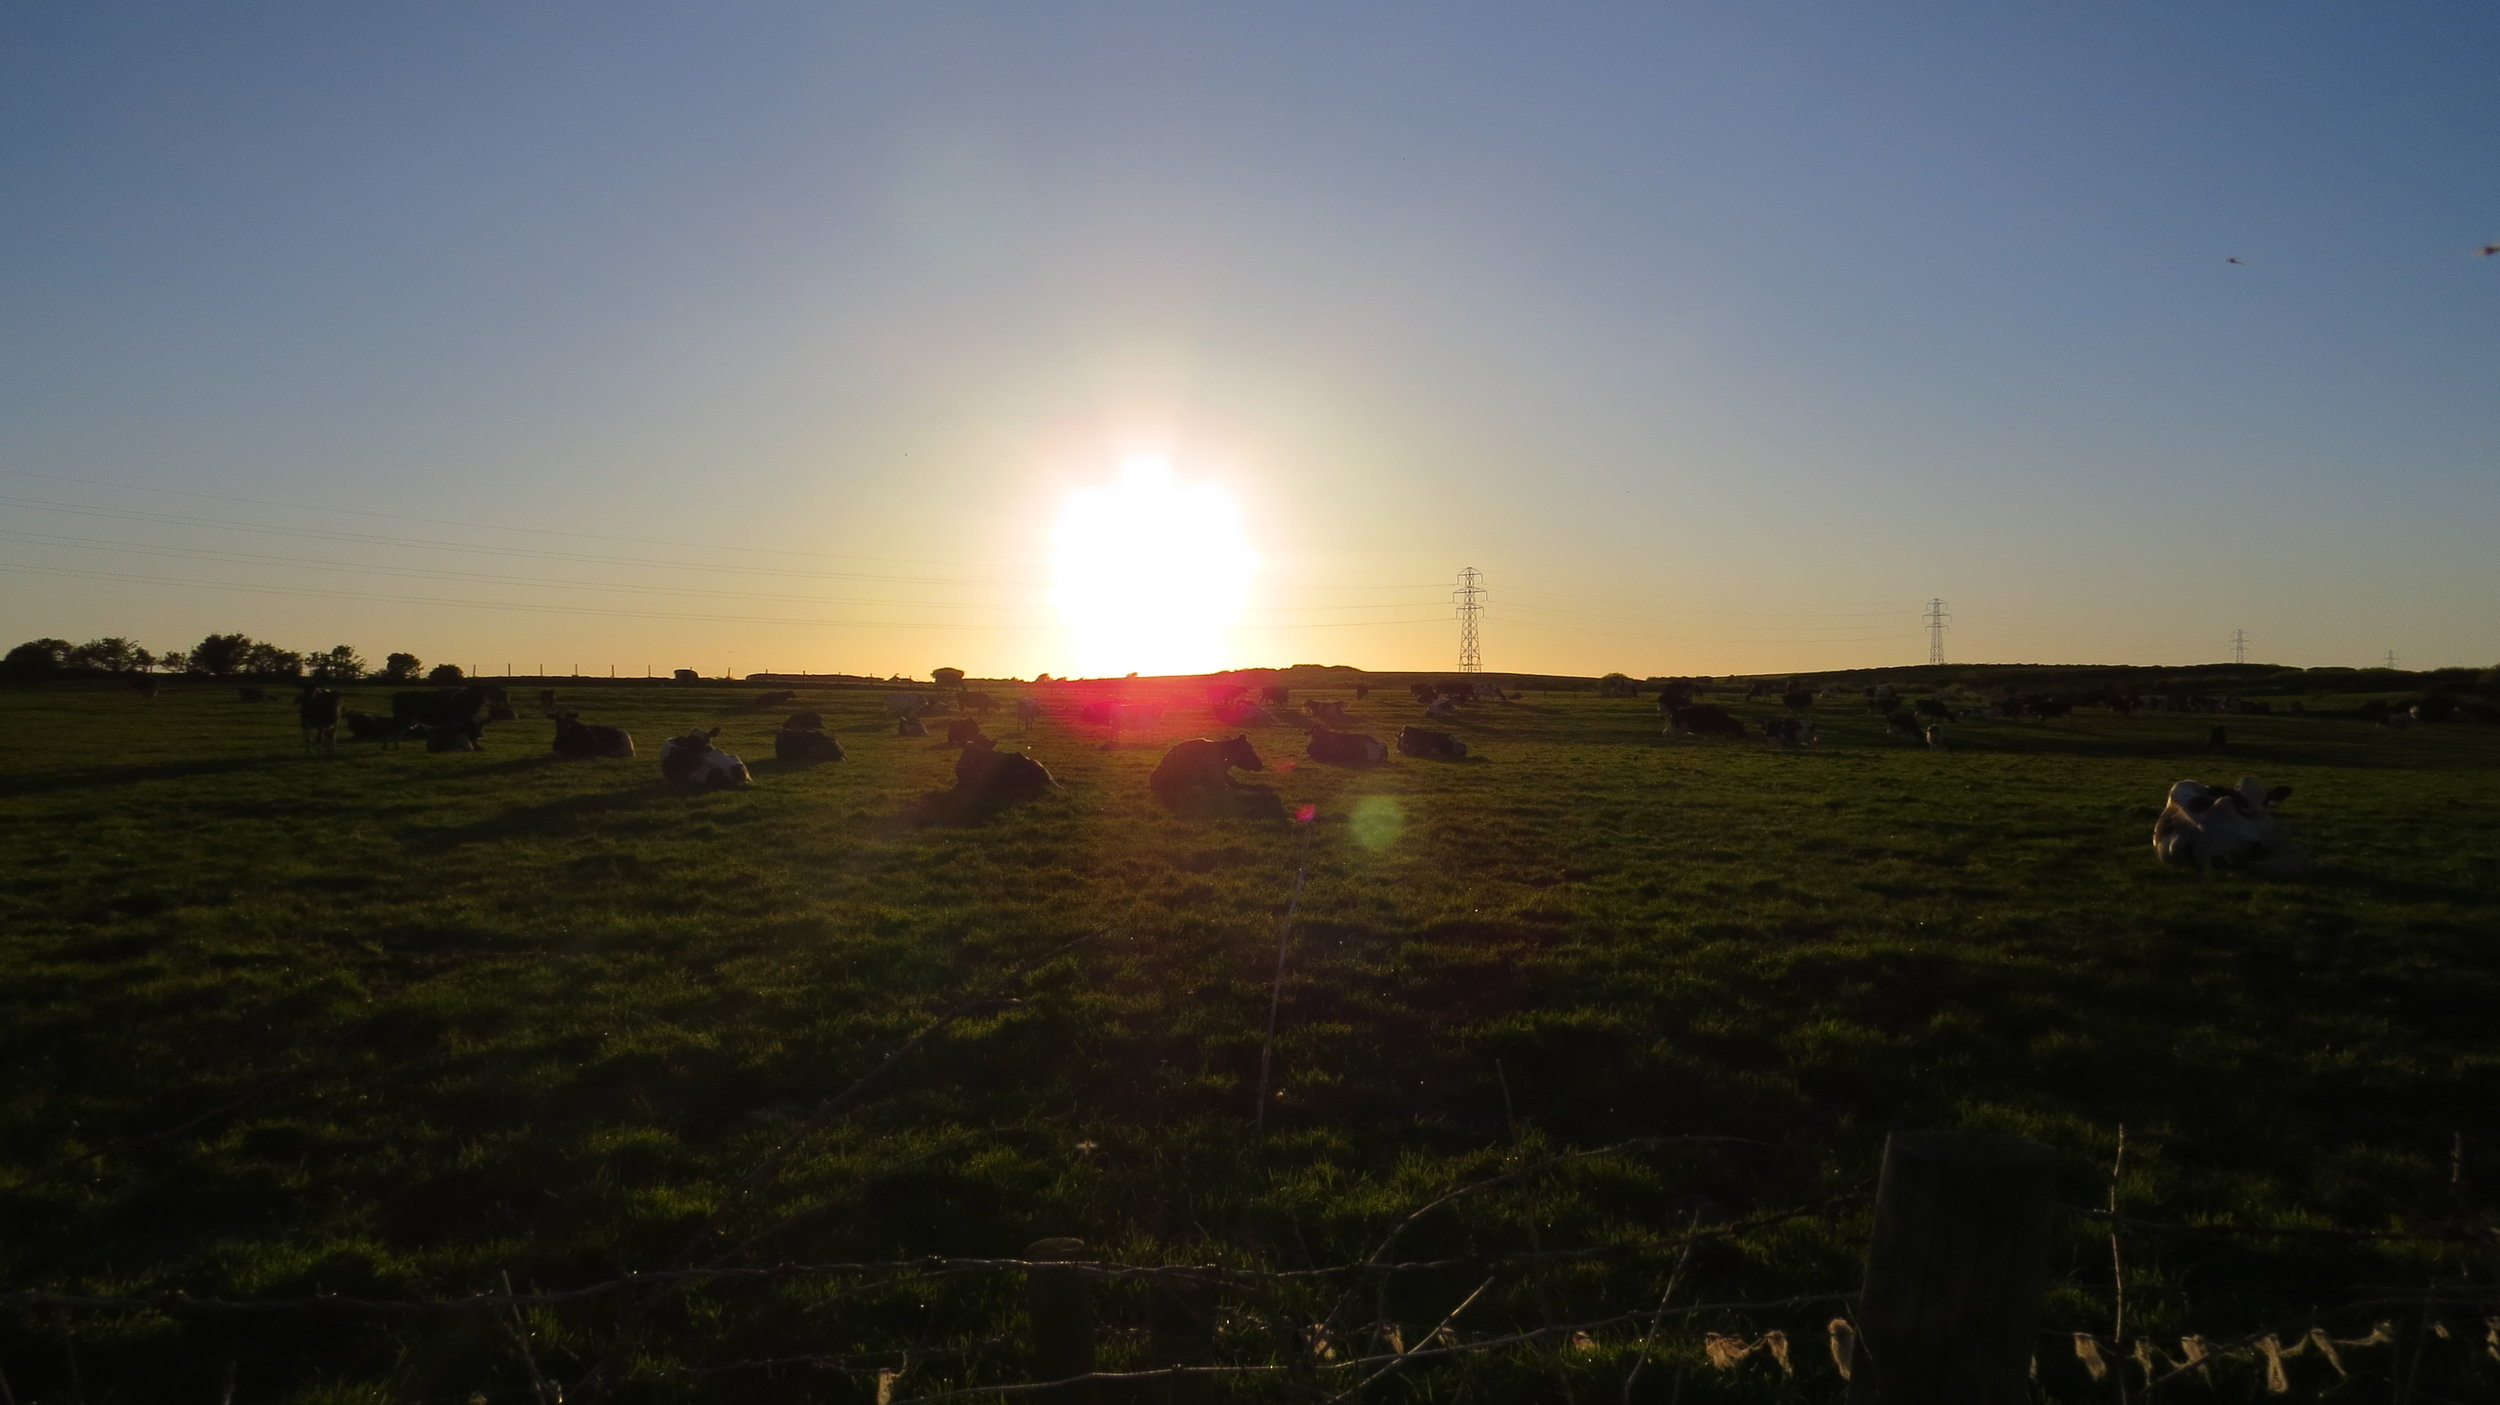 Cows & Sunset